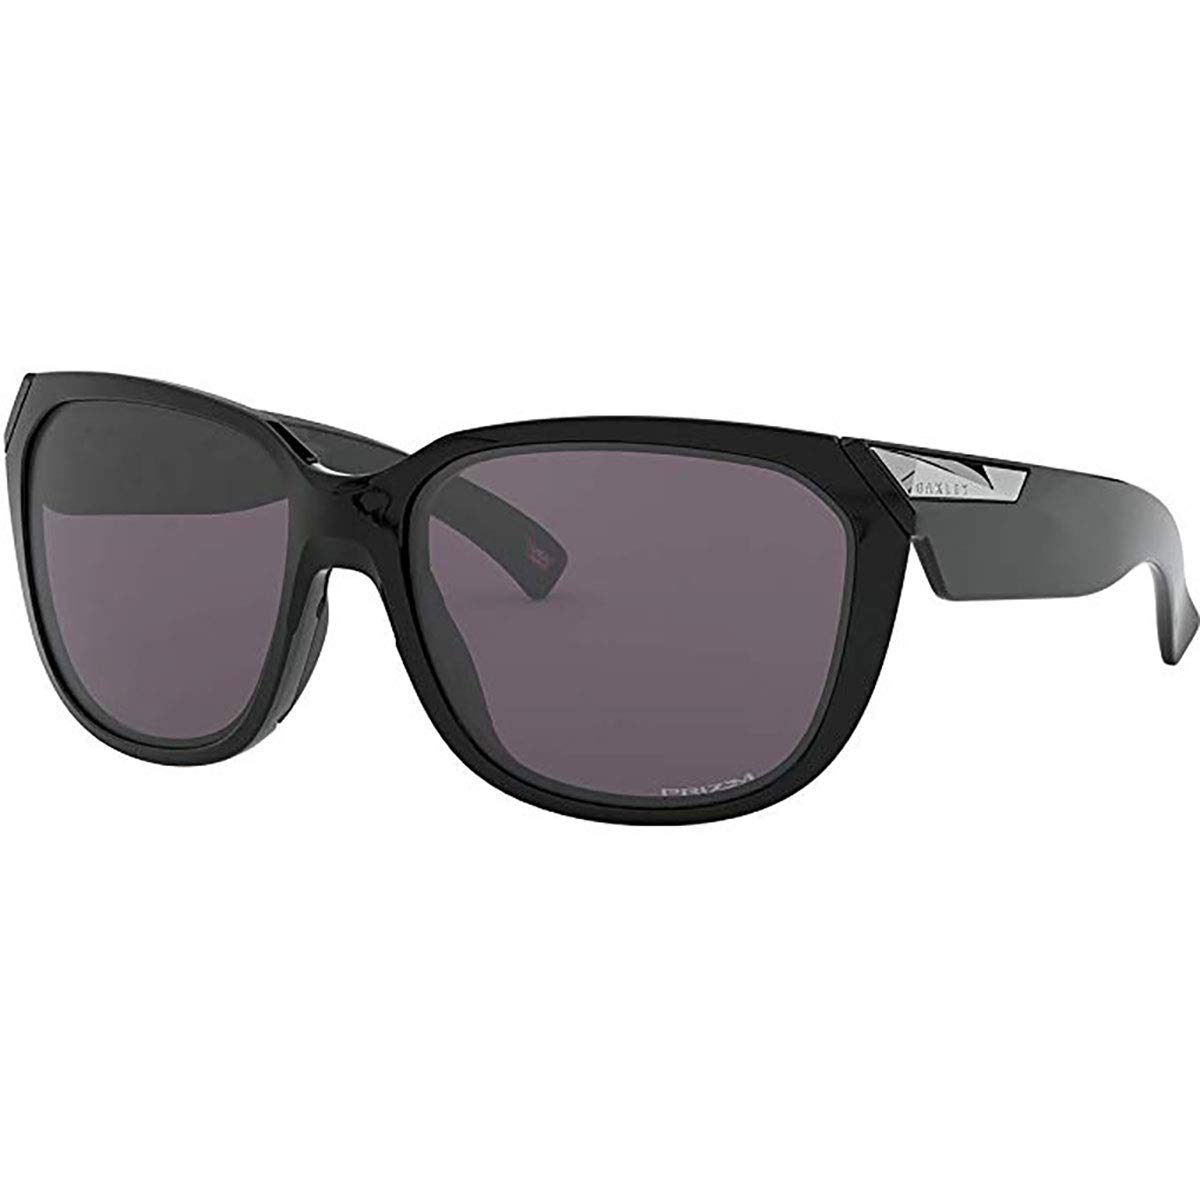 Oakley Rev Up Sunglasses,OS,Polished Black/Prizm Gray by Oakley